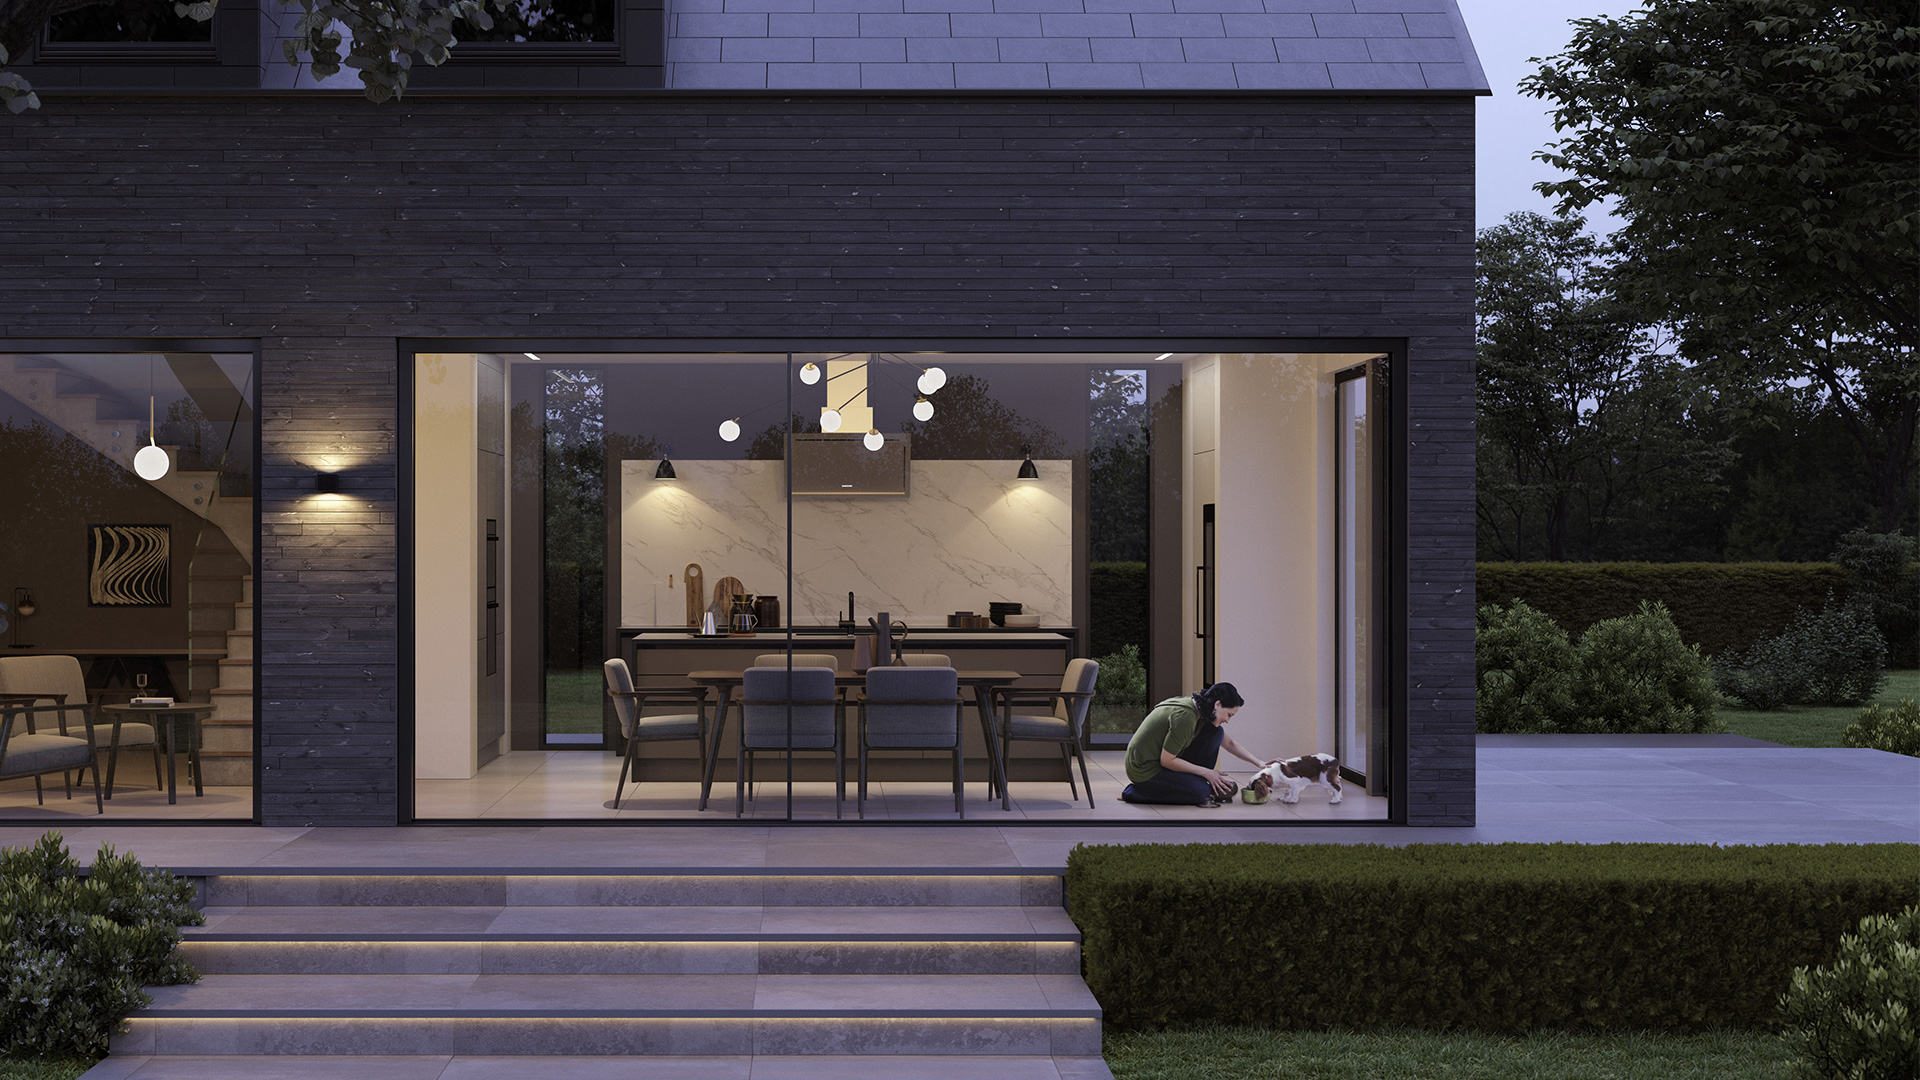 External view of property with uform kitchen